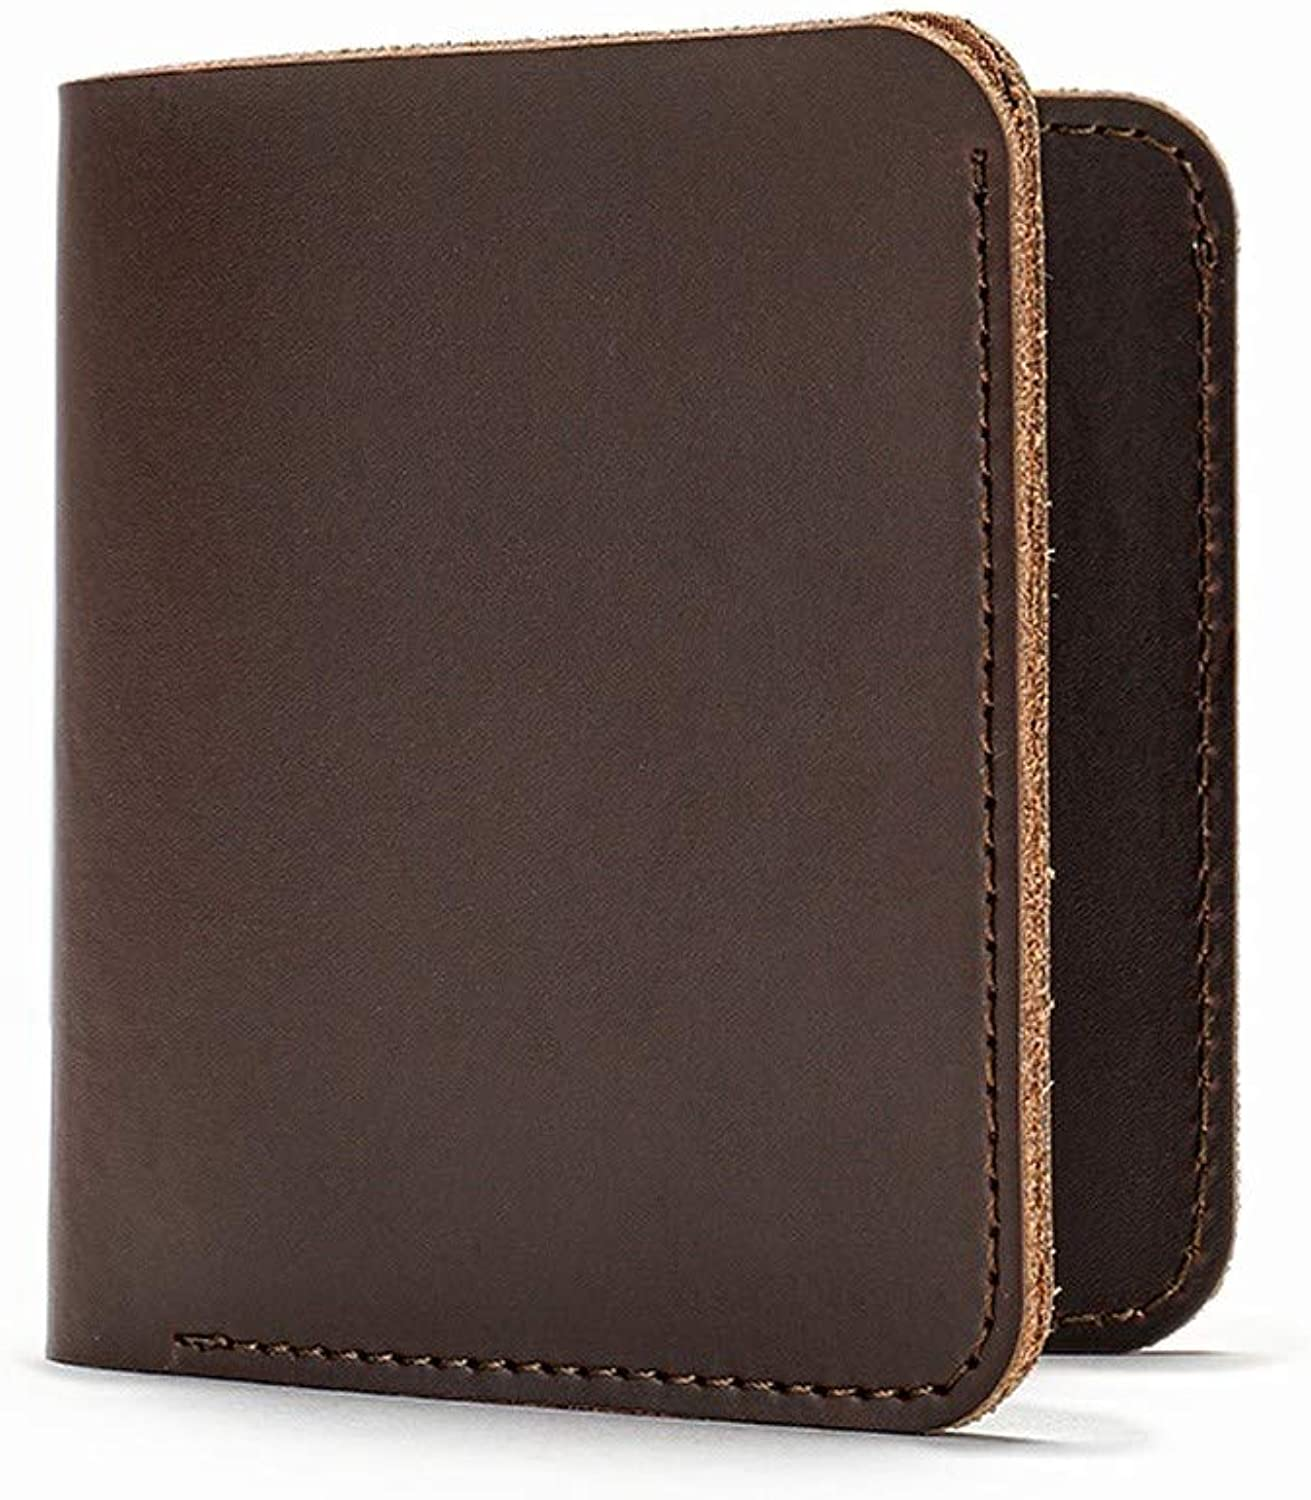 Rcnry Men's Leather Long and Short Wallet, MultiCard Retro Wallet, Recreational MultiFunctional Pocket Wallet